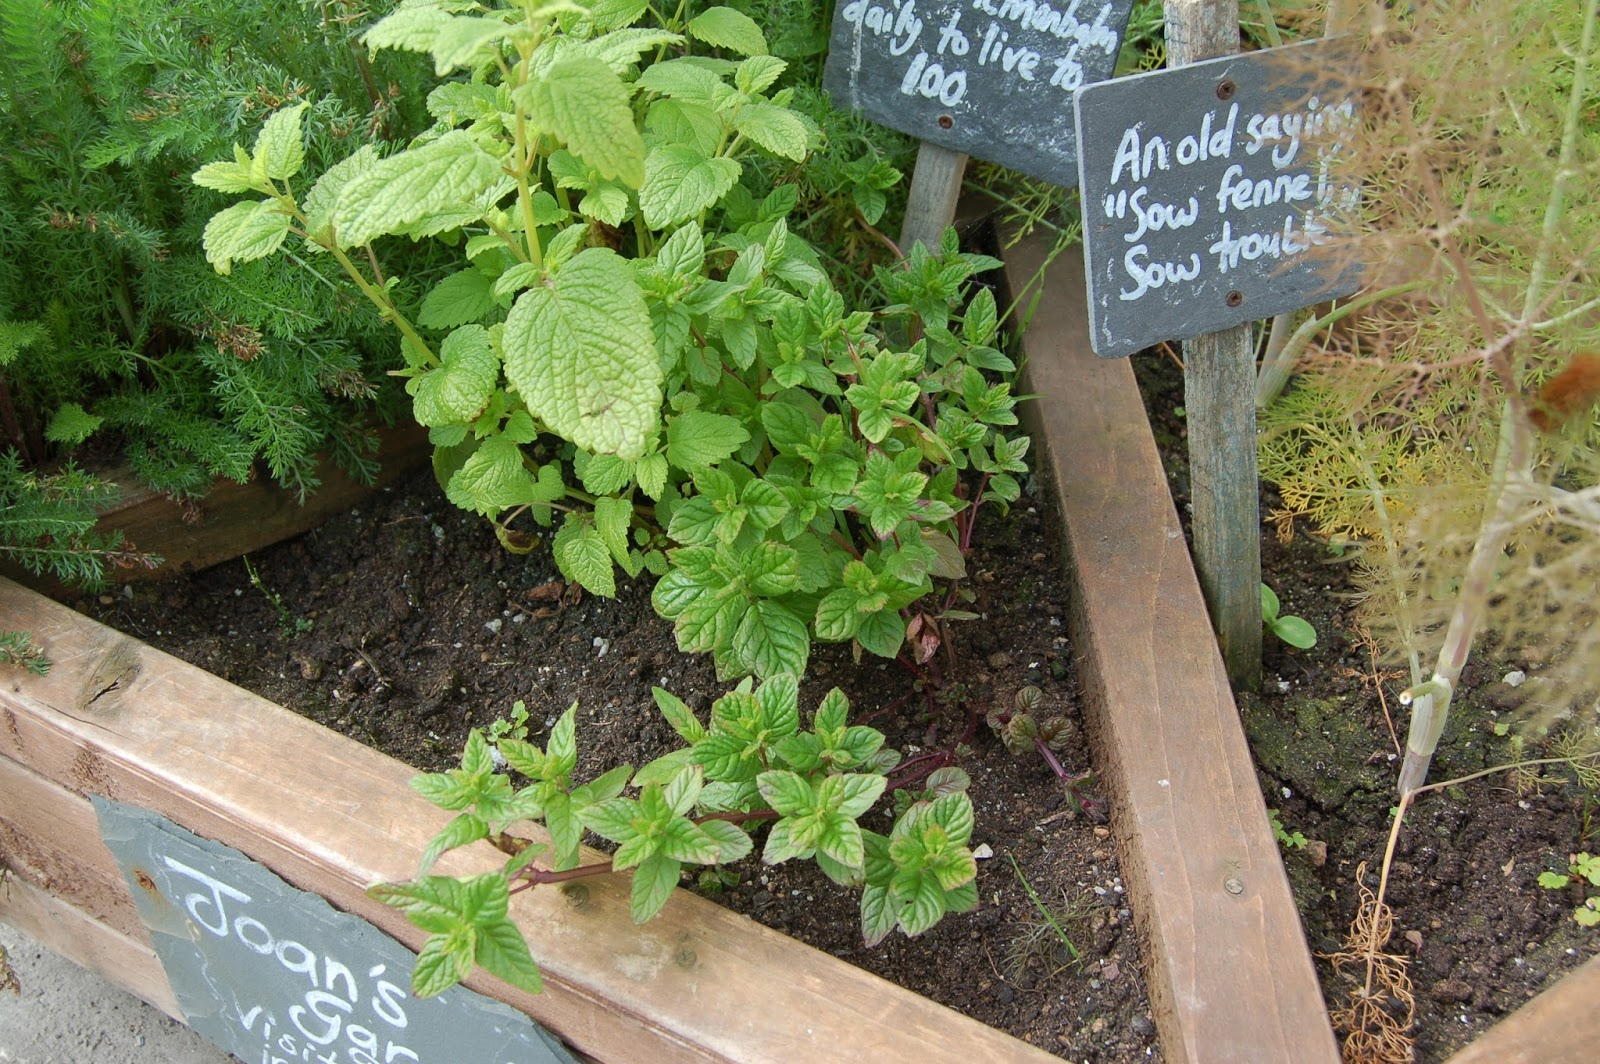 Museum of Witchcraft Diary: Mystery herbs appear outside the Museum